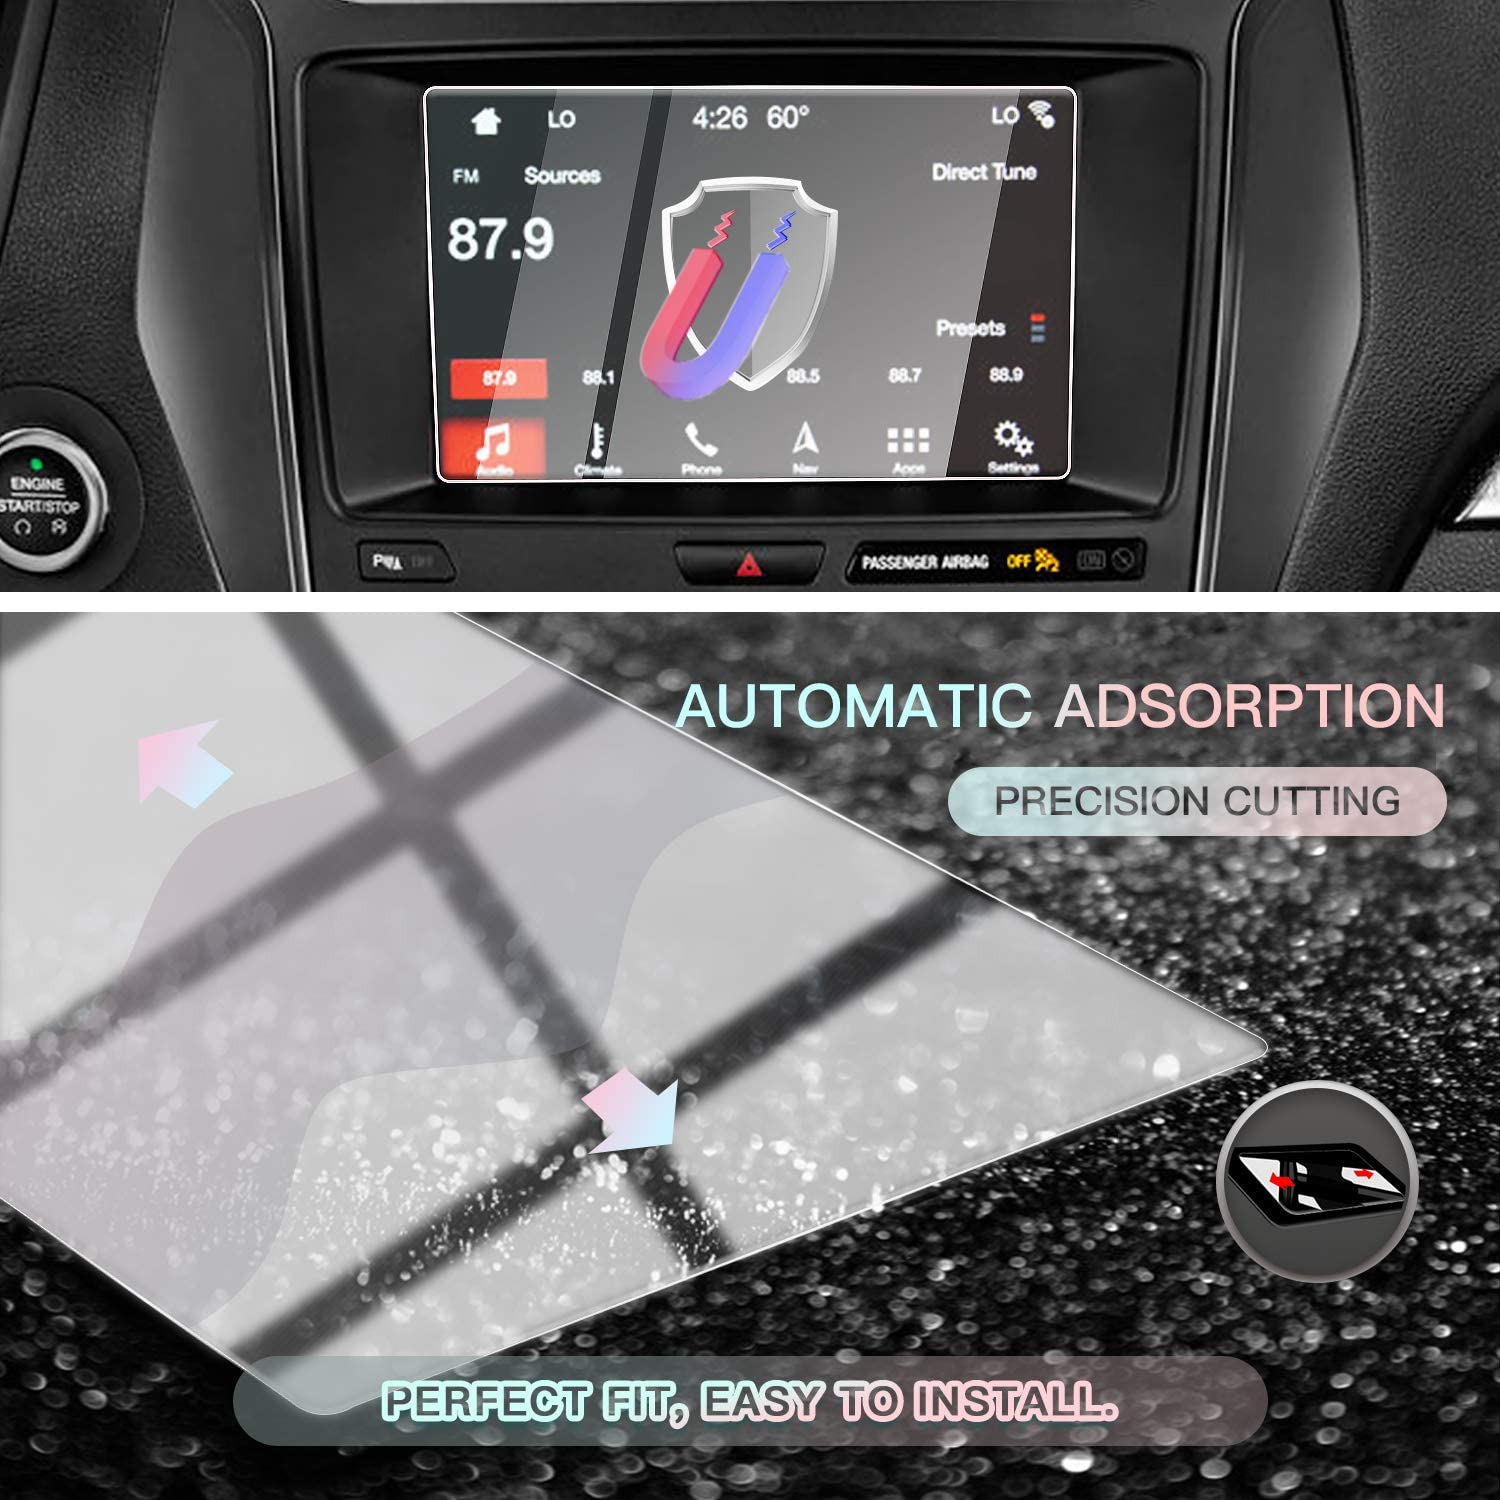 Tempered Glass HD Scratch Resistance CDEFG Car Screen Protector Center Control Navigation Touch Screen Protector for 2015-2019 Ford Explorer 8 Inch